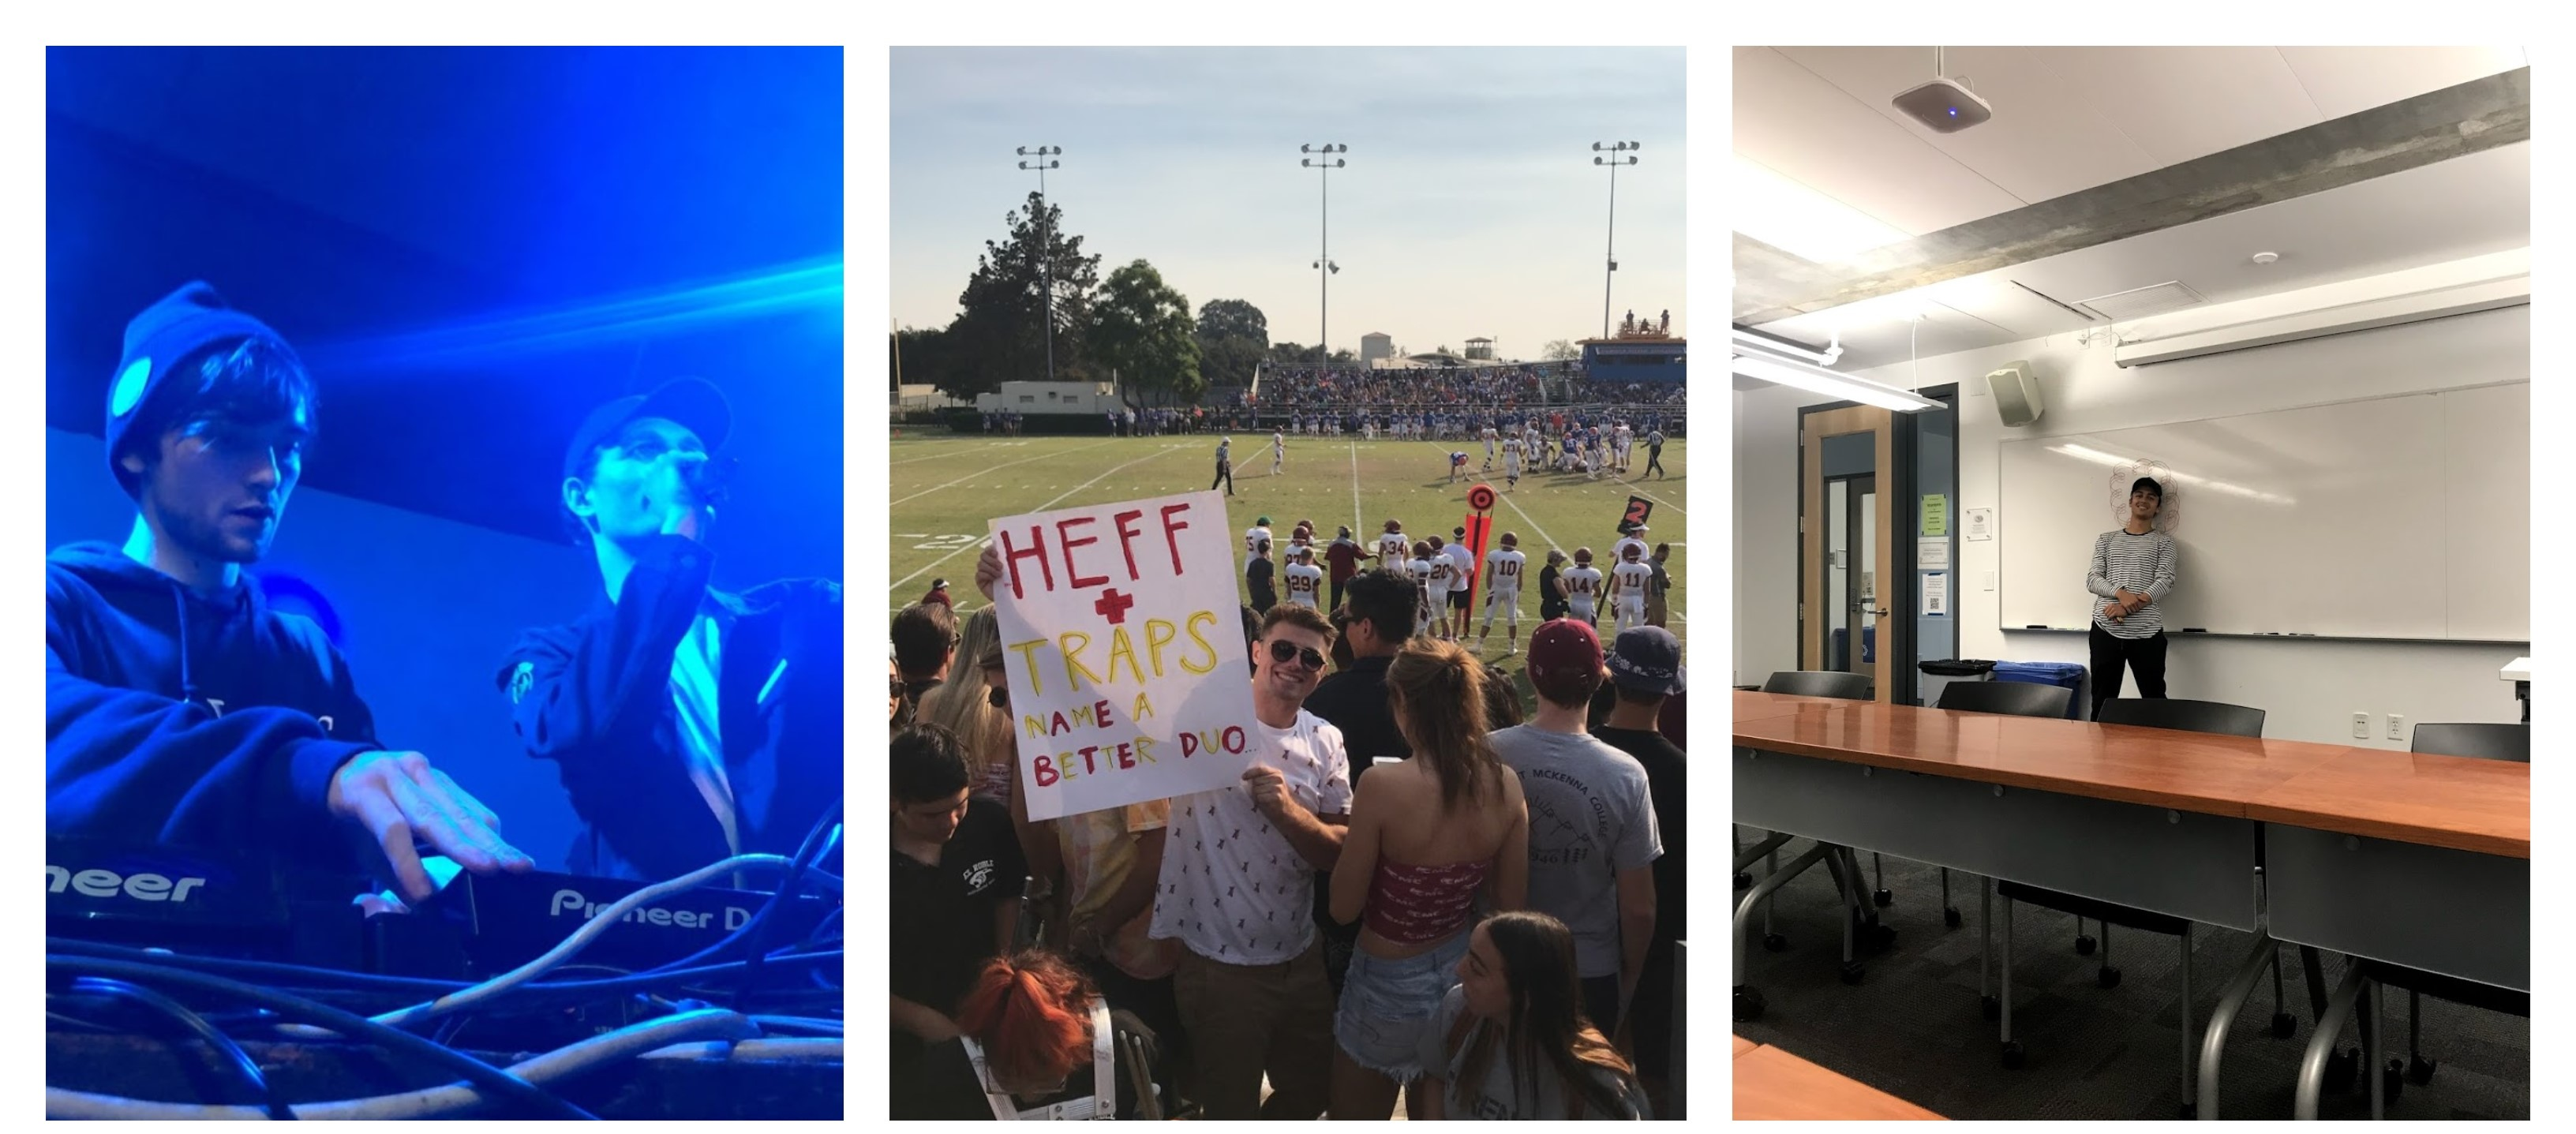 """The left photo is of Louis the Child performing at a concert. The middle photo is Sam holding up a poster at a football game that reads """"Heff+Traps Name a Better Duo"""". The right photo is Danny next to a white board in a Shan classroom."""